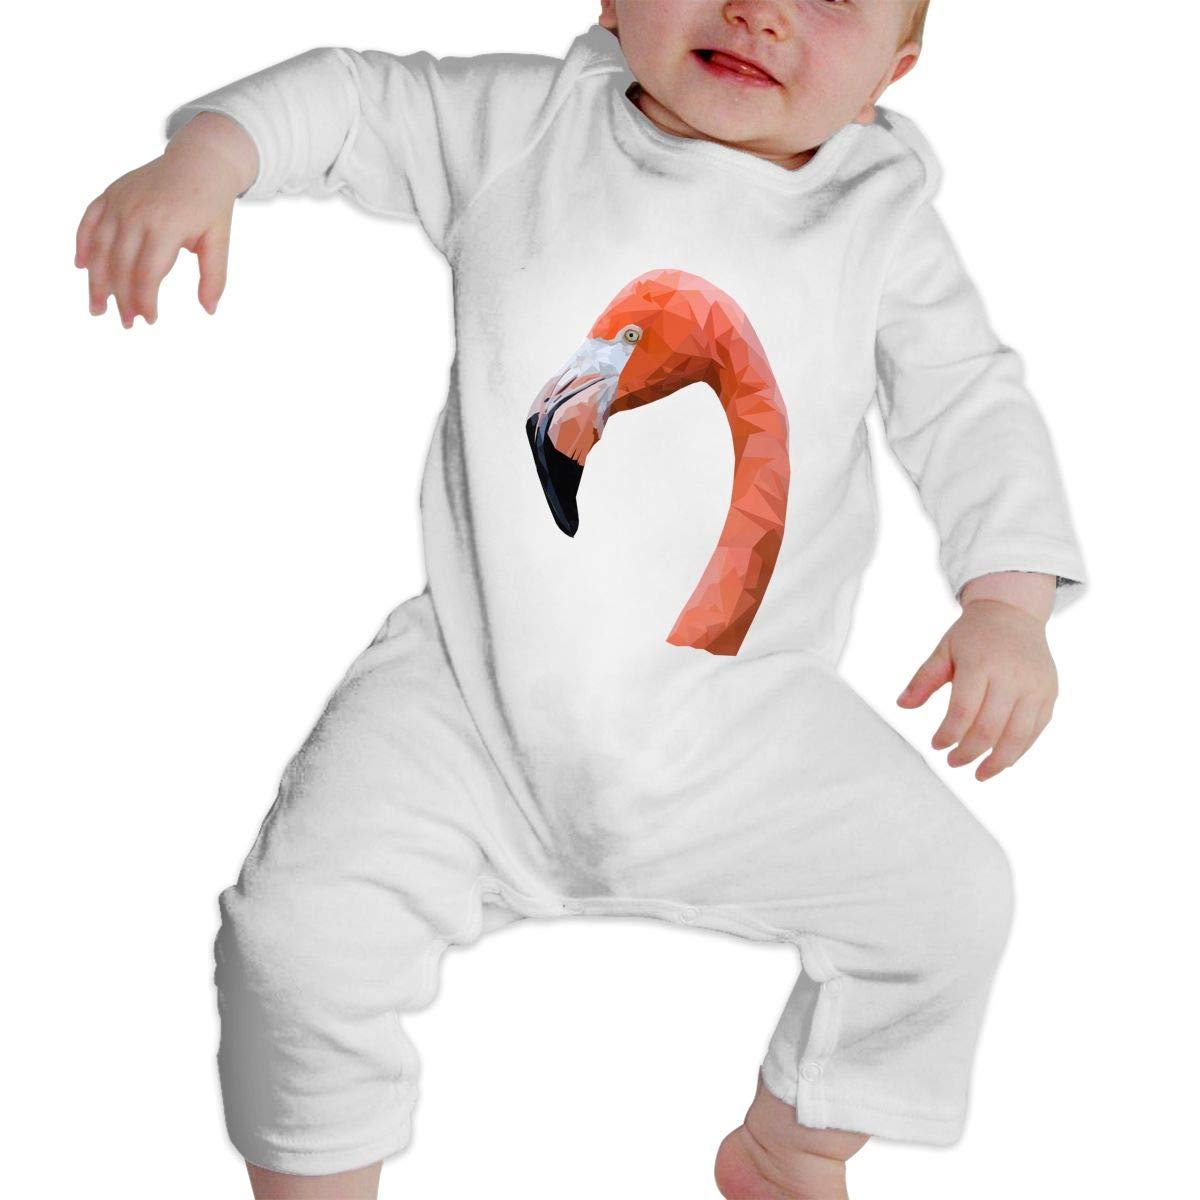 LucyEve Unisex Baby O-Neck Short Sleeve Onesie How to Train Your Dragon Funny Jumpsuits Sleepwear Black